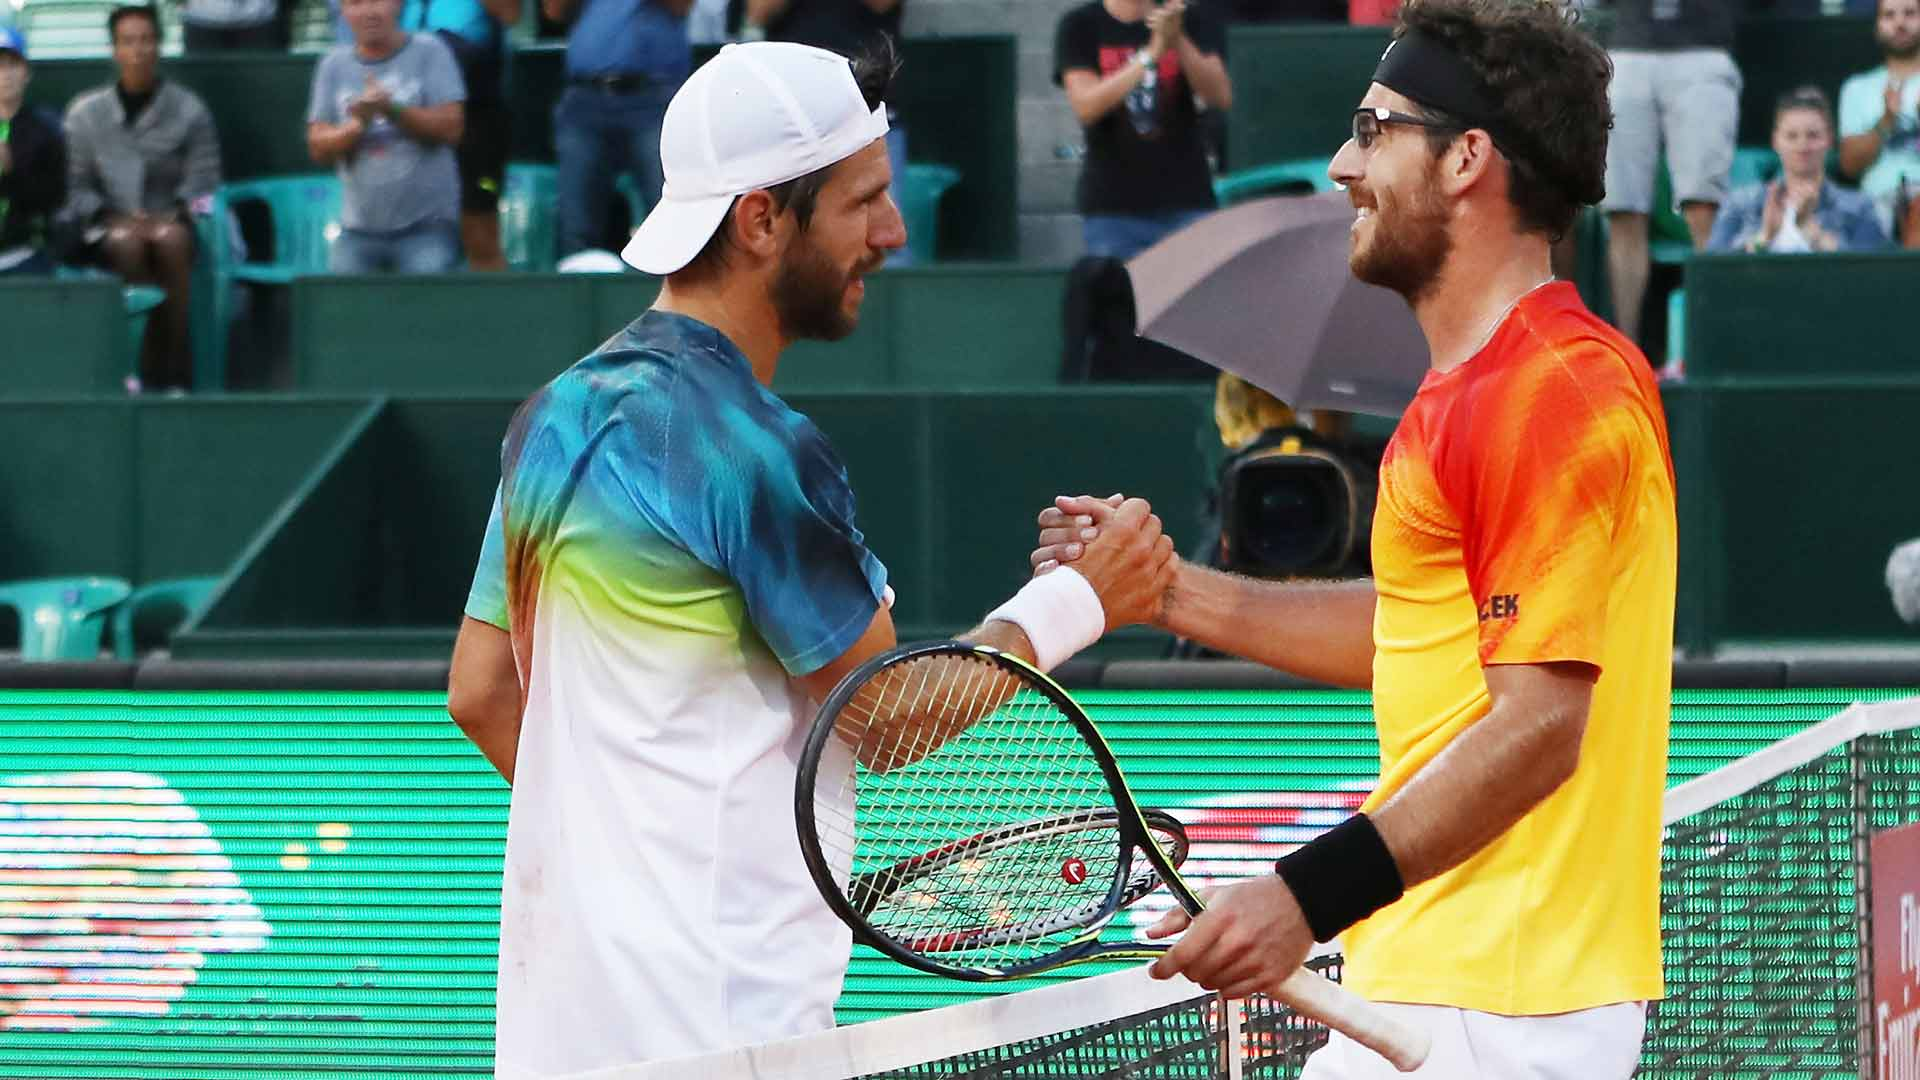 Gerald and Jurgen Melzer put on a show on Thursday at the Generali Open in Kitzbuhel.